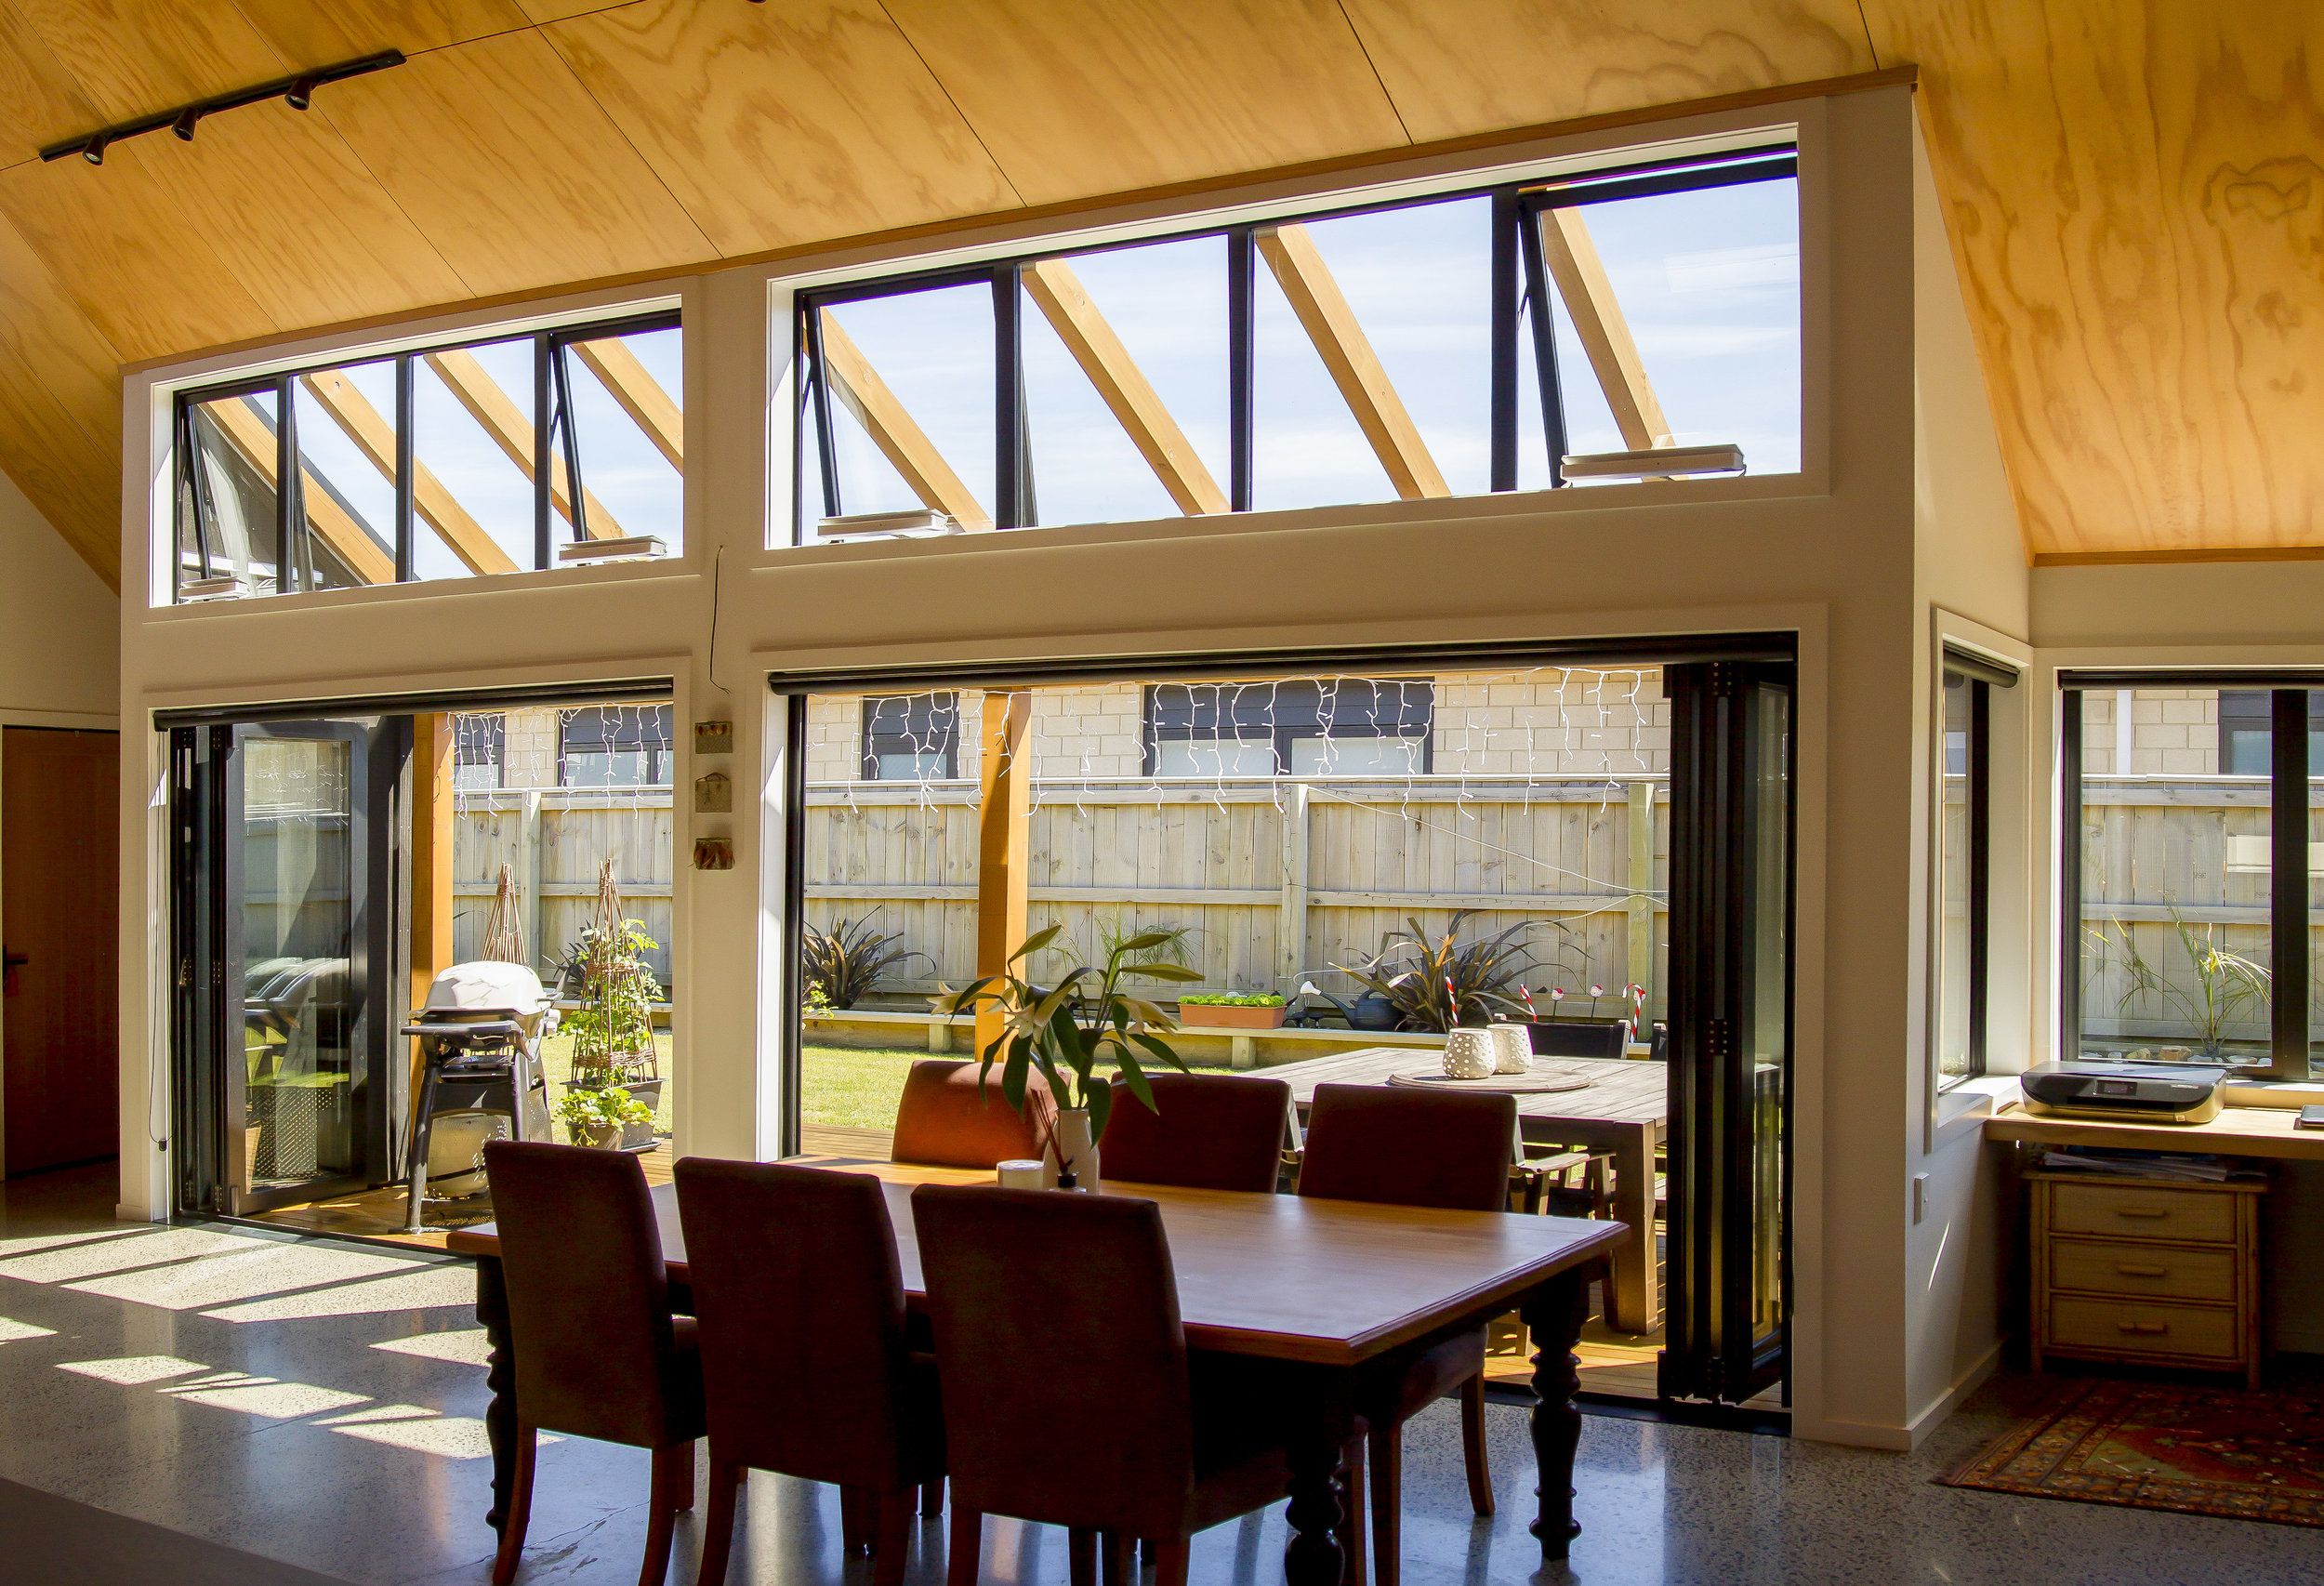 High Windows  - The high windows reveal the outside pergola that continues the roof line, while also letting more light into the living area.